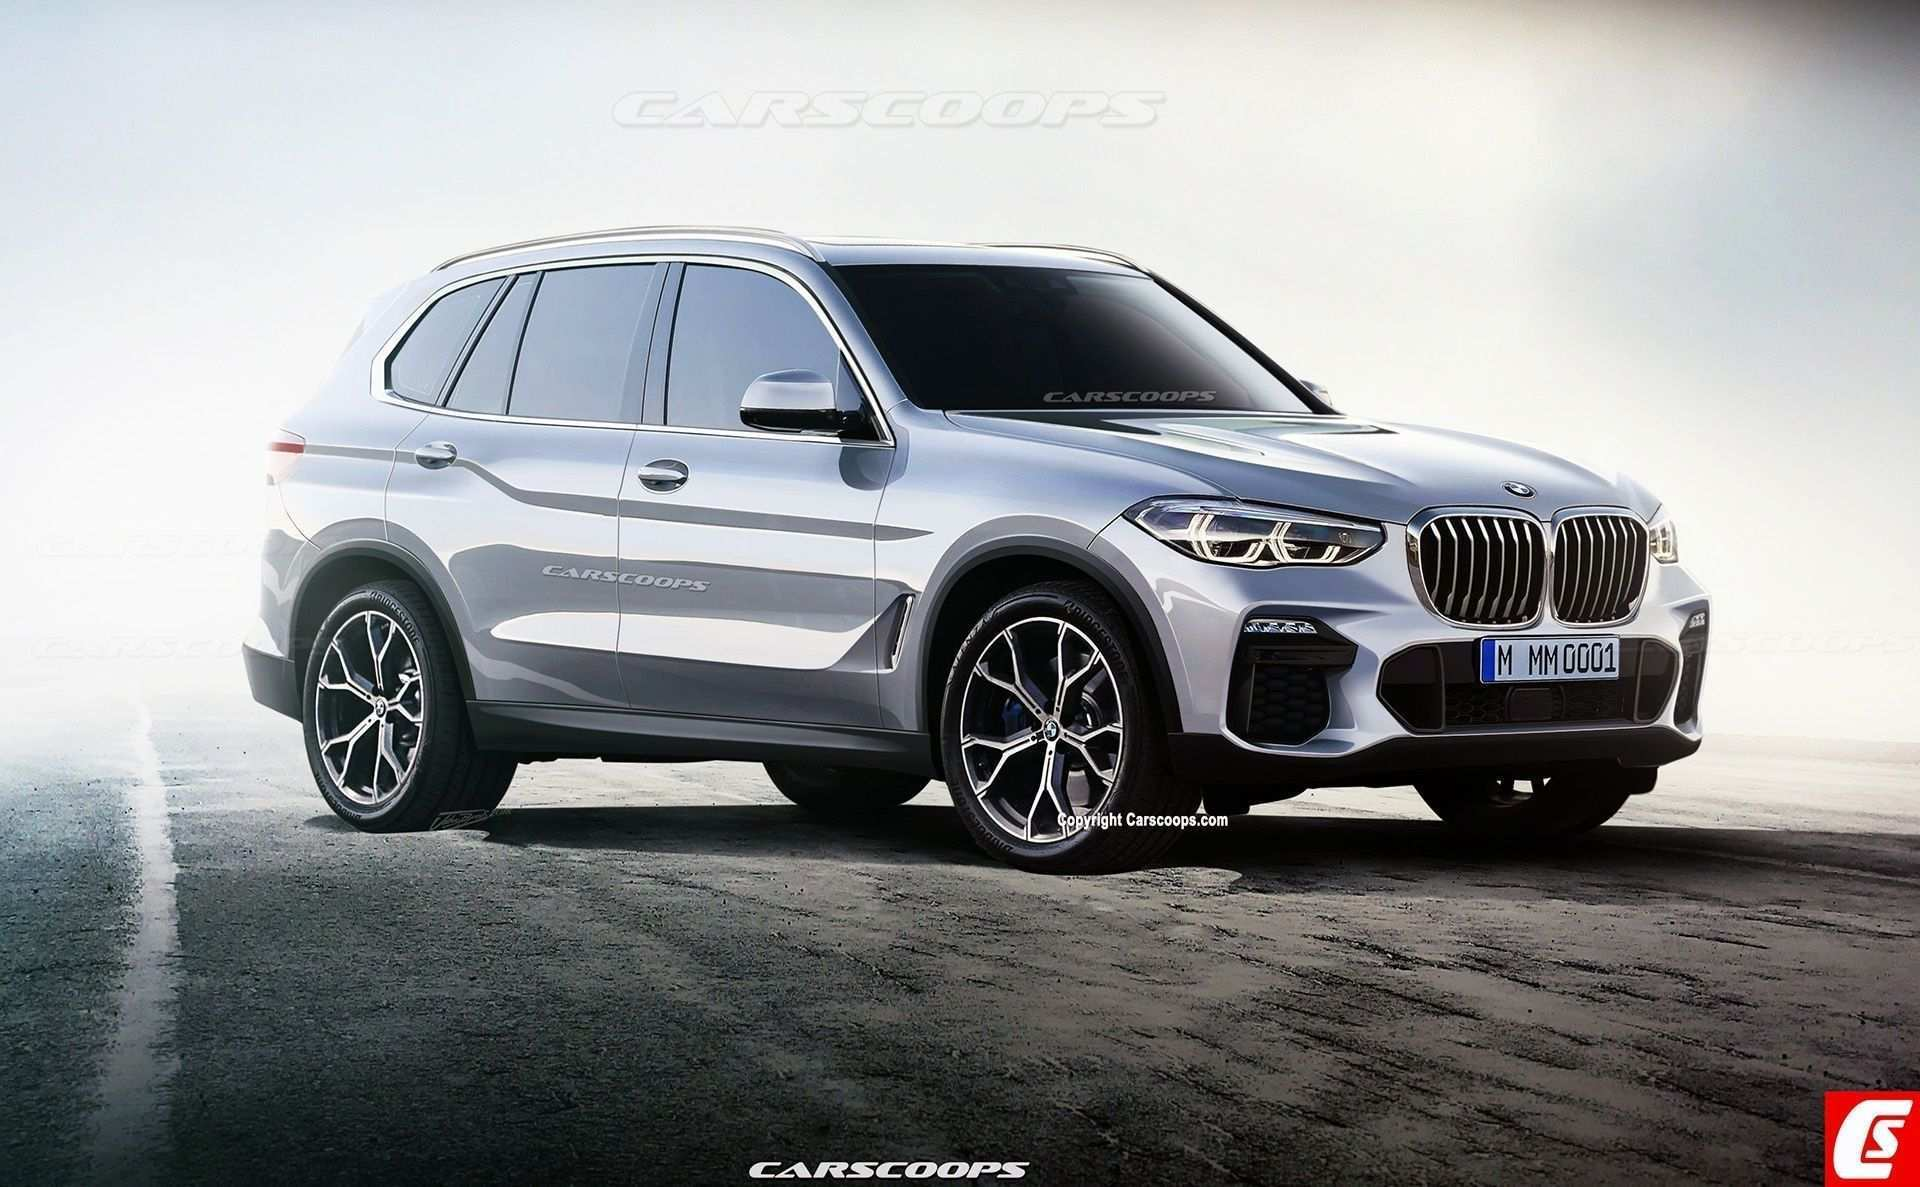 53 All New Upcoming Bmw 2019 Concept Redesign And Review Rumors with Upcoming Bmw 2019 Concept Redesign And Review